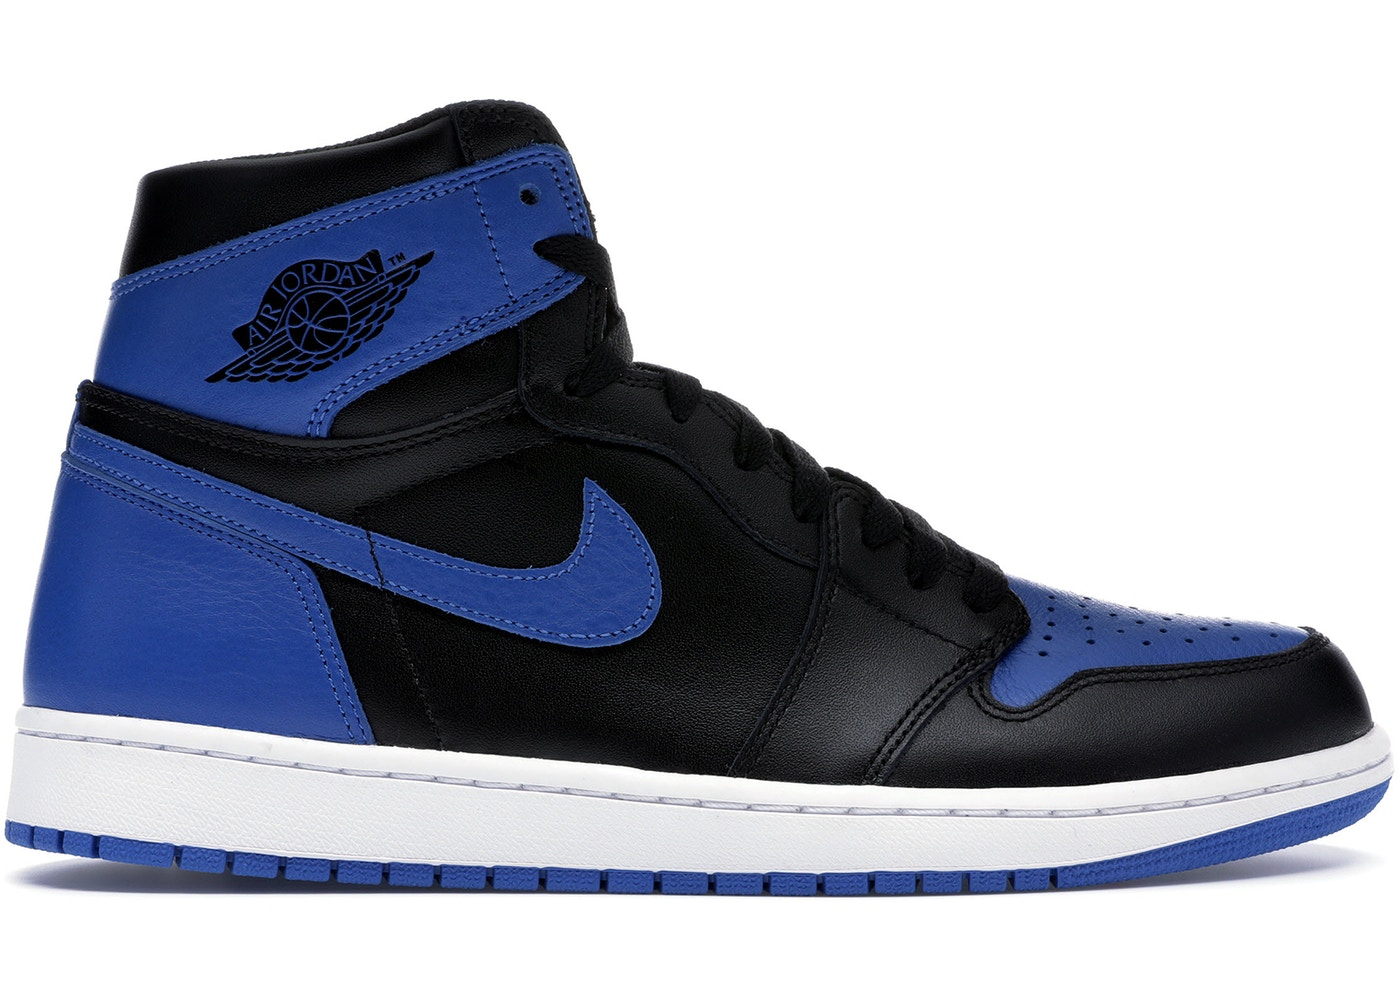 8de8c9291784dd Jordan 1 Retro Royal (2017) - 555088-007